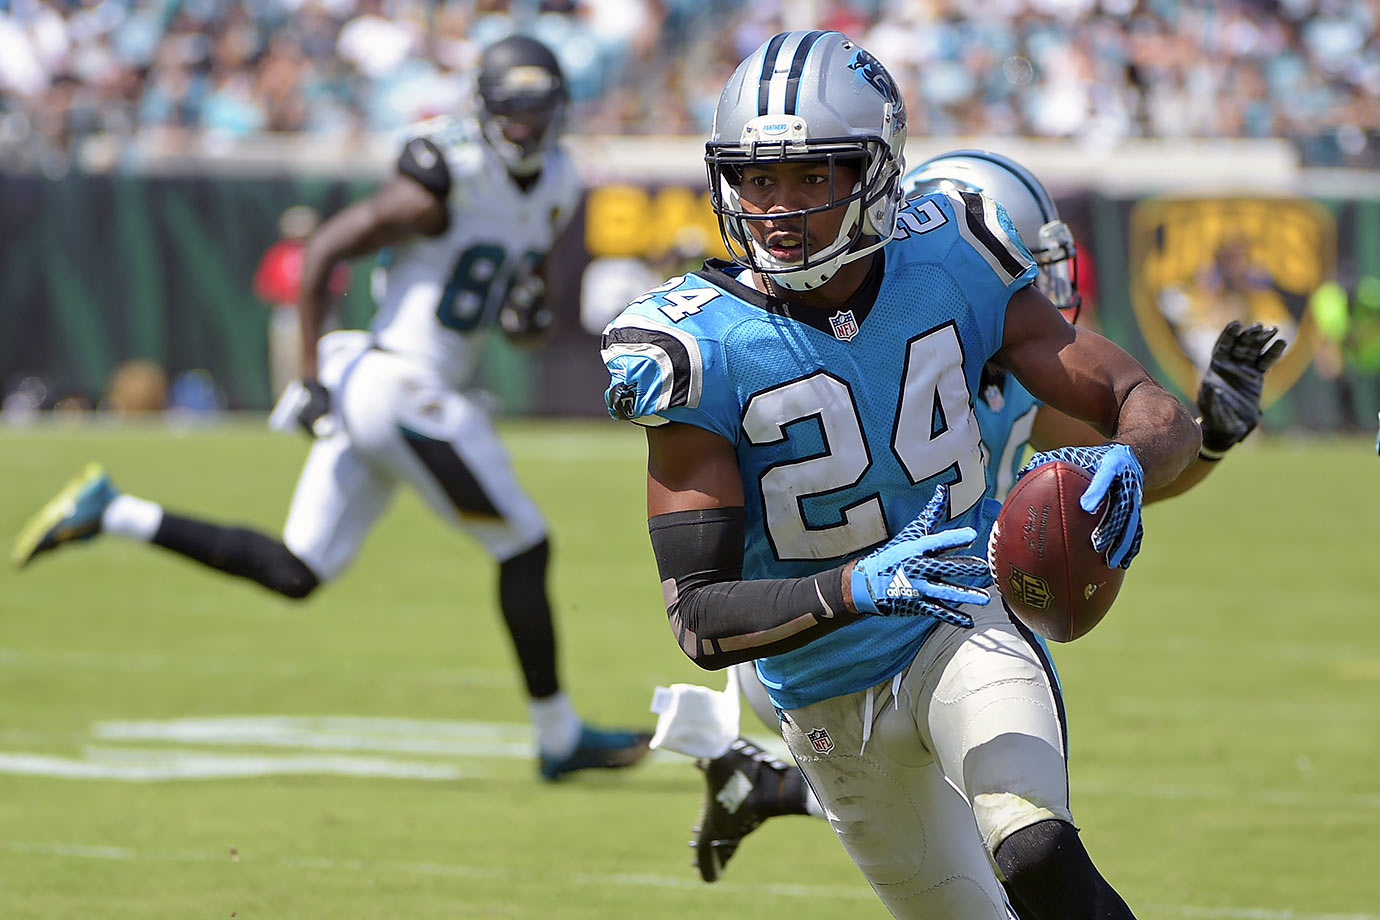 The Panthers opened the 2015 season with a 20-9 win over the Jaguars. It was a one-point game until the middle of the third quarter, when cornerback Josh Norman picked off Jacksonville quarterback Blake Bortles and returned it 30 yards for a touchdown. The Panthers defense held Bortles to just 183 yards passing on the day and picked him off twice.